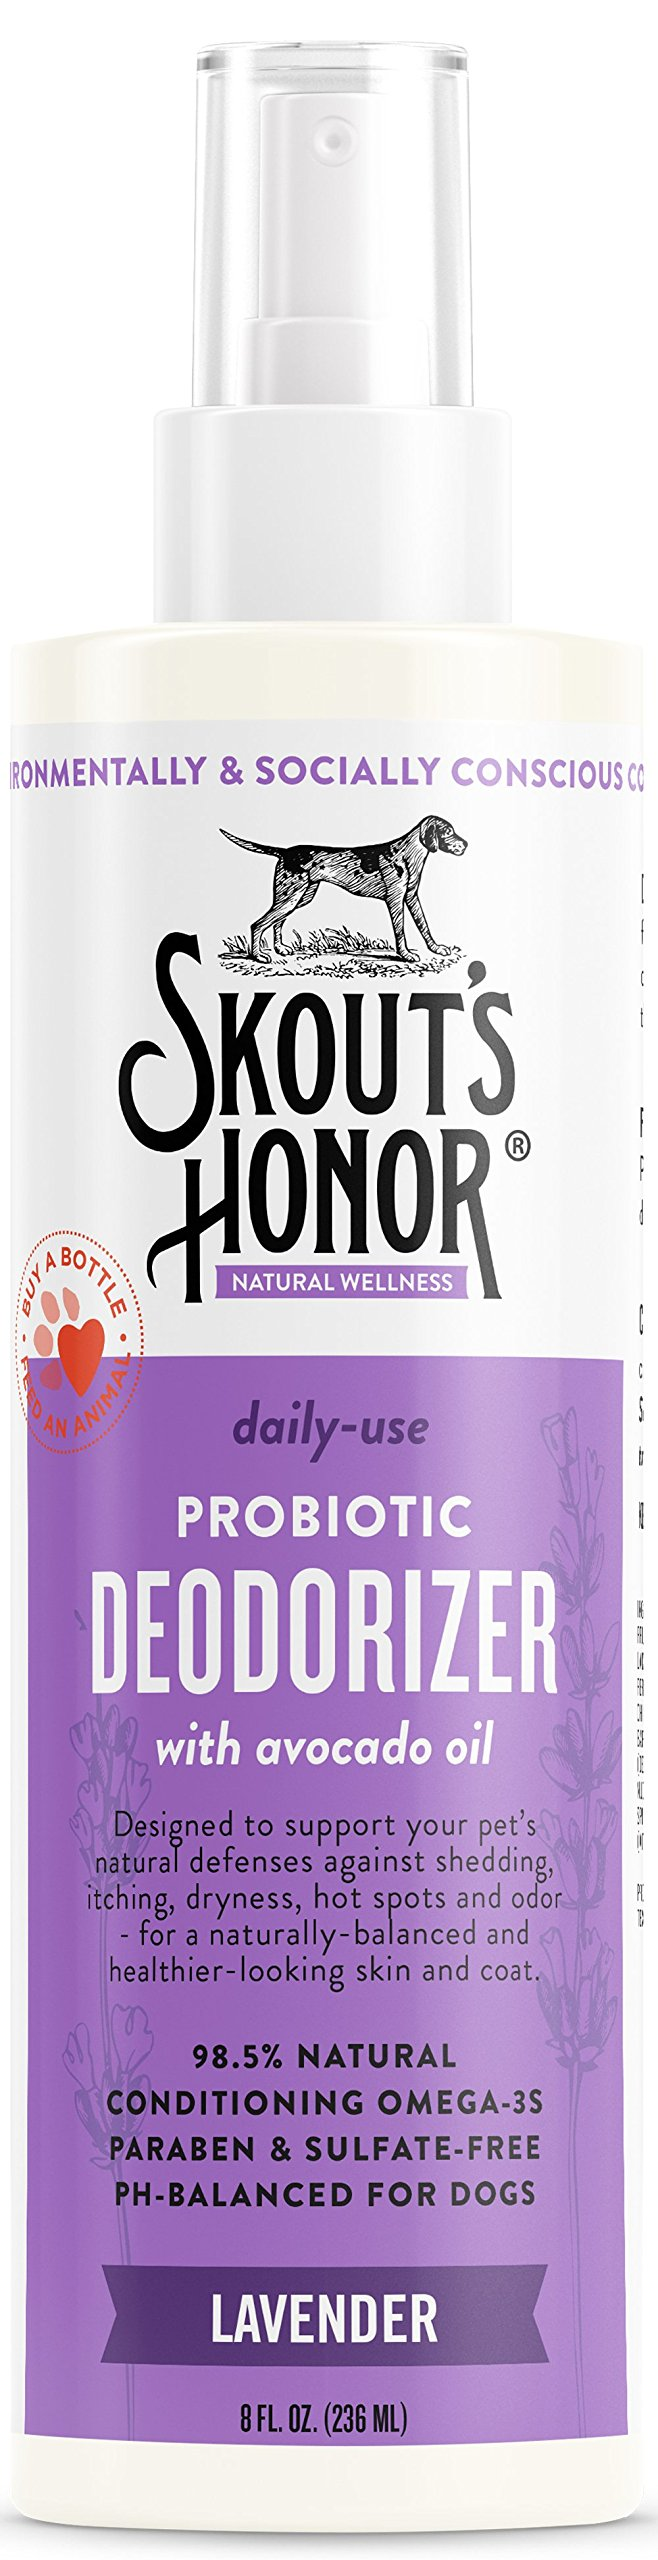 SKOUT'S HONOR Pet Conditioner Probiotic Deodorizer Lavender - 8 fl. oz. - Hydrates and Deodorizes Fur, Supports Pet's Natural Defenses, PH-Balanced and Sulfate Free - Avocado Oil…